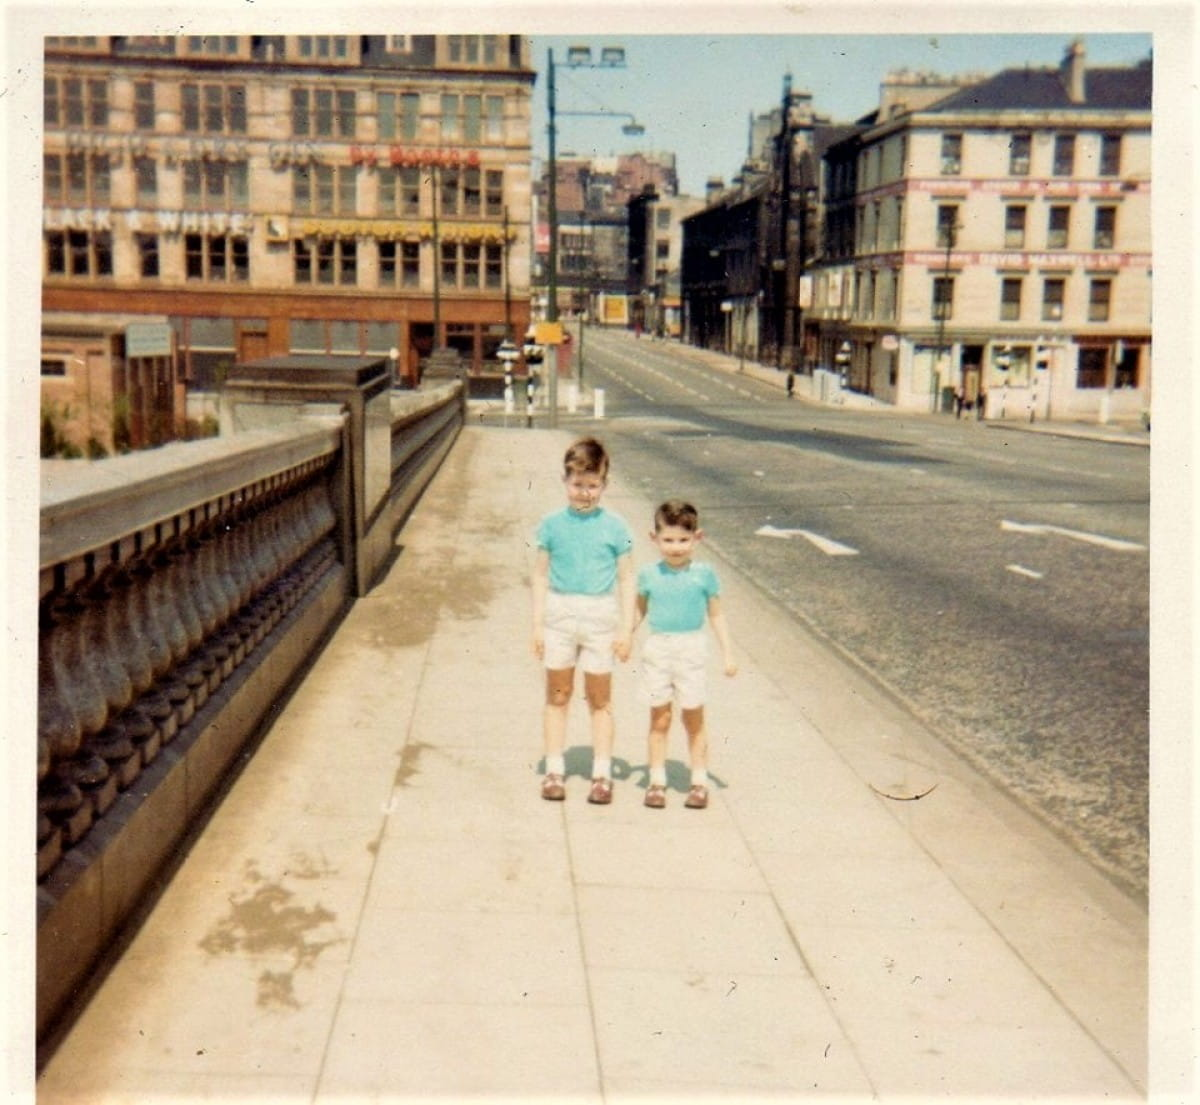 The boys on the bridge (Andy Macleod, right, and his older brother on George V Bridge, 1967)